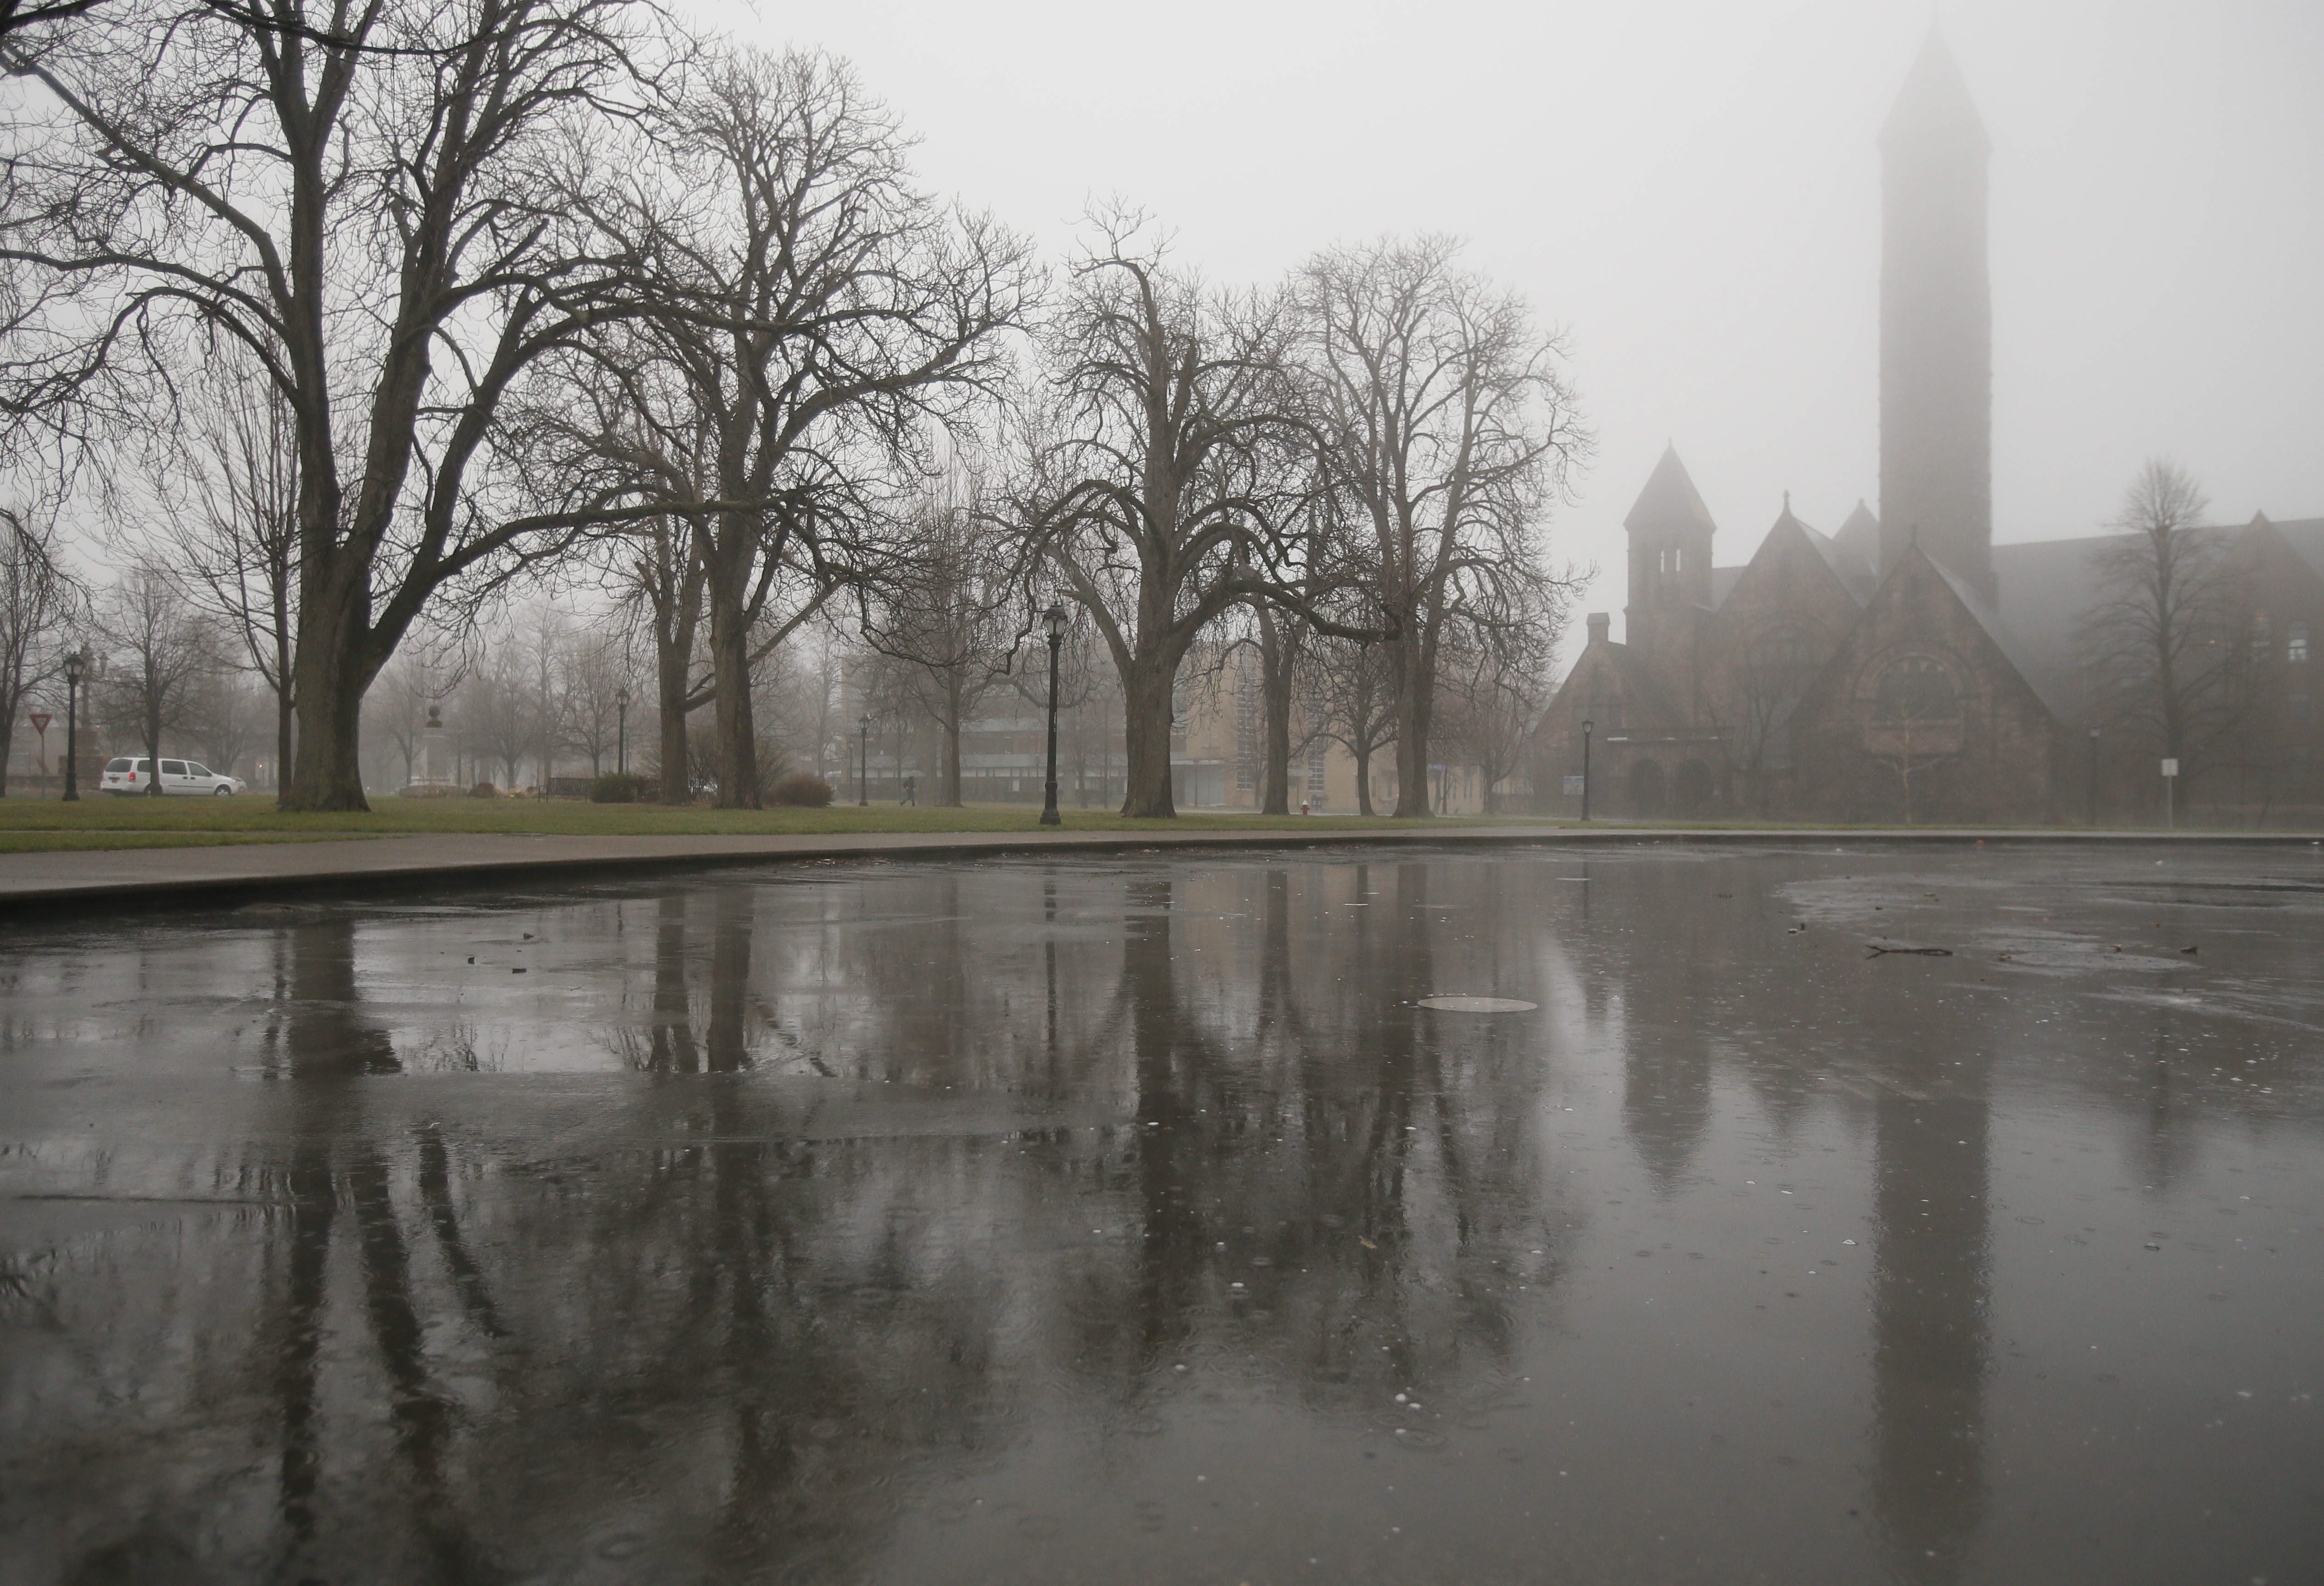 Morning fog obscures the steeple of the First Presbyterian Church in Symphony Circle, Tuesday, April 22, 2014.  (Derek Gee/Buffalo News)